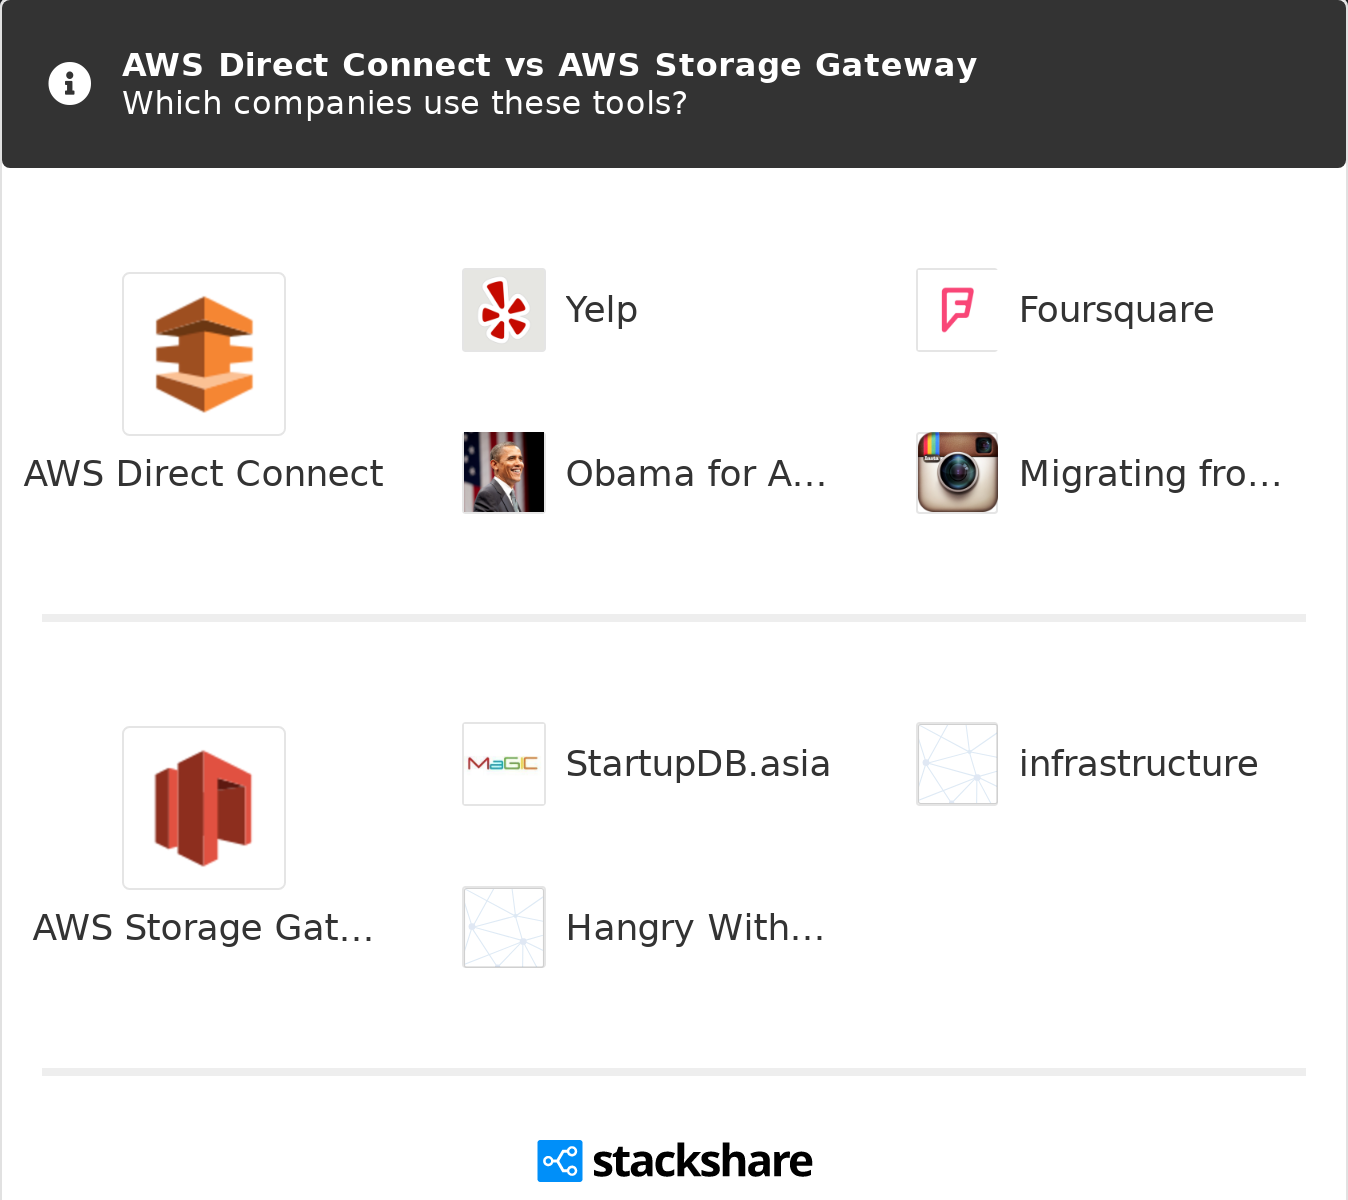 AWS Direct Connect vs AWS Storage Gateway | What are the